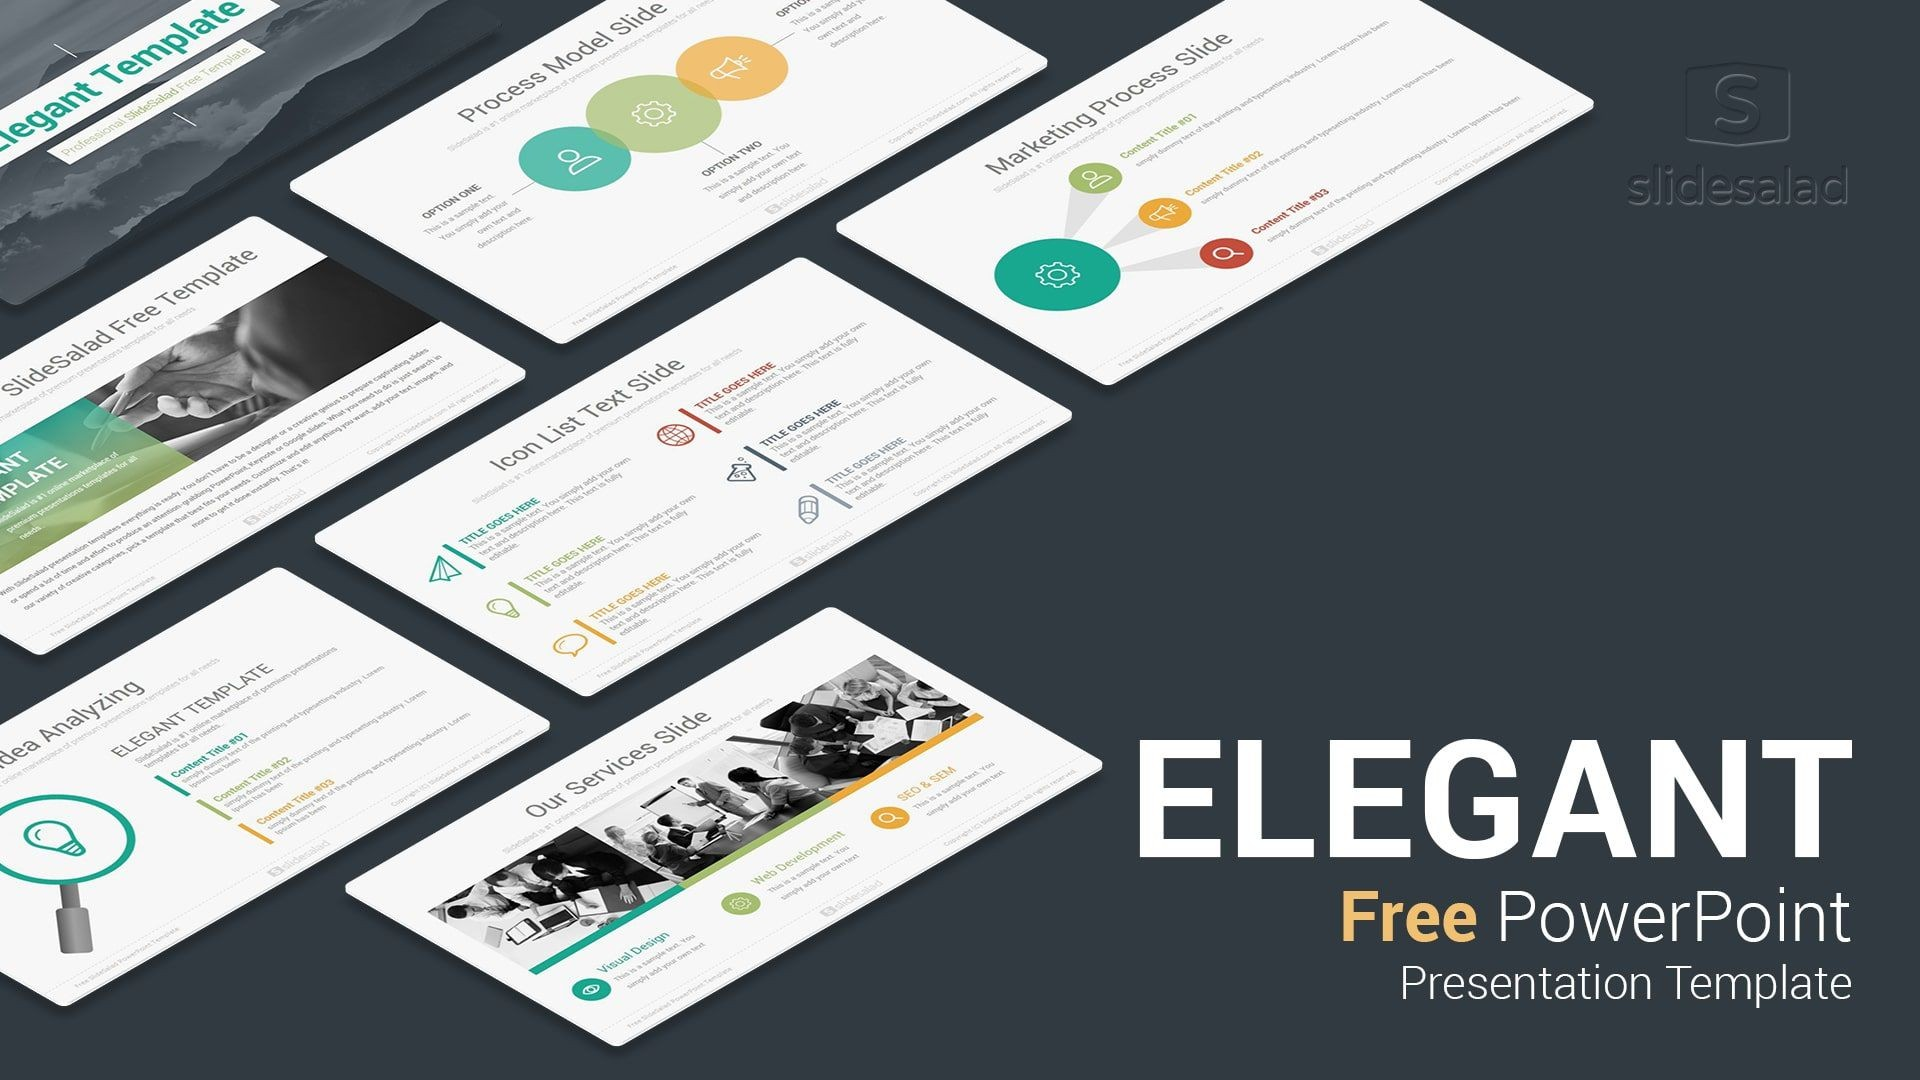 004 Imposing Download Free Powerpoint Template Highest Clarity  2019 Science Creative 20201920